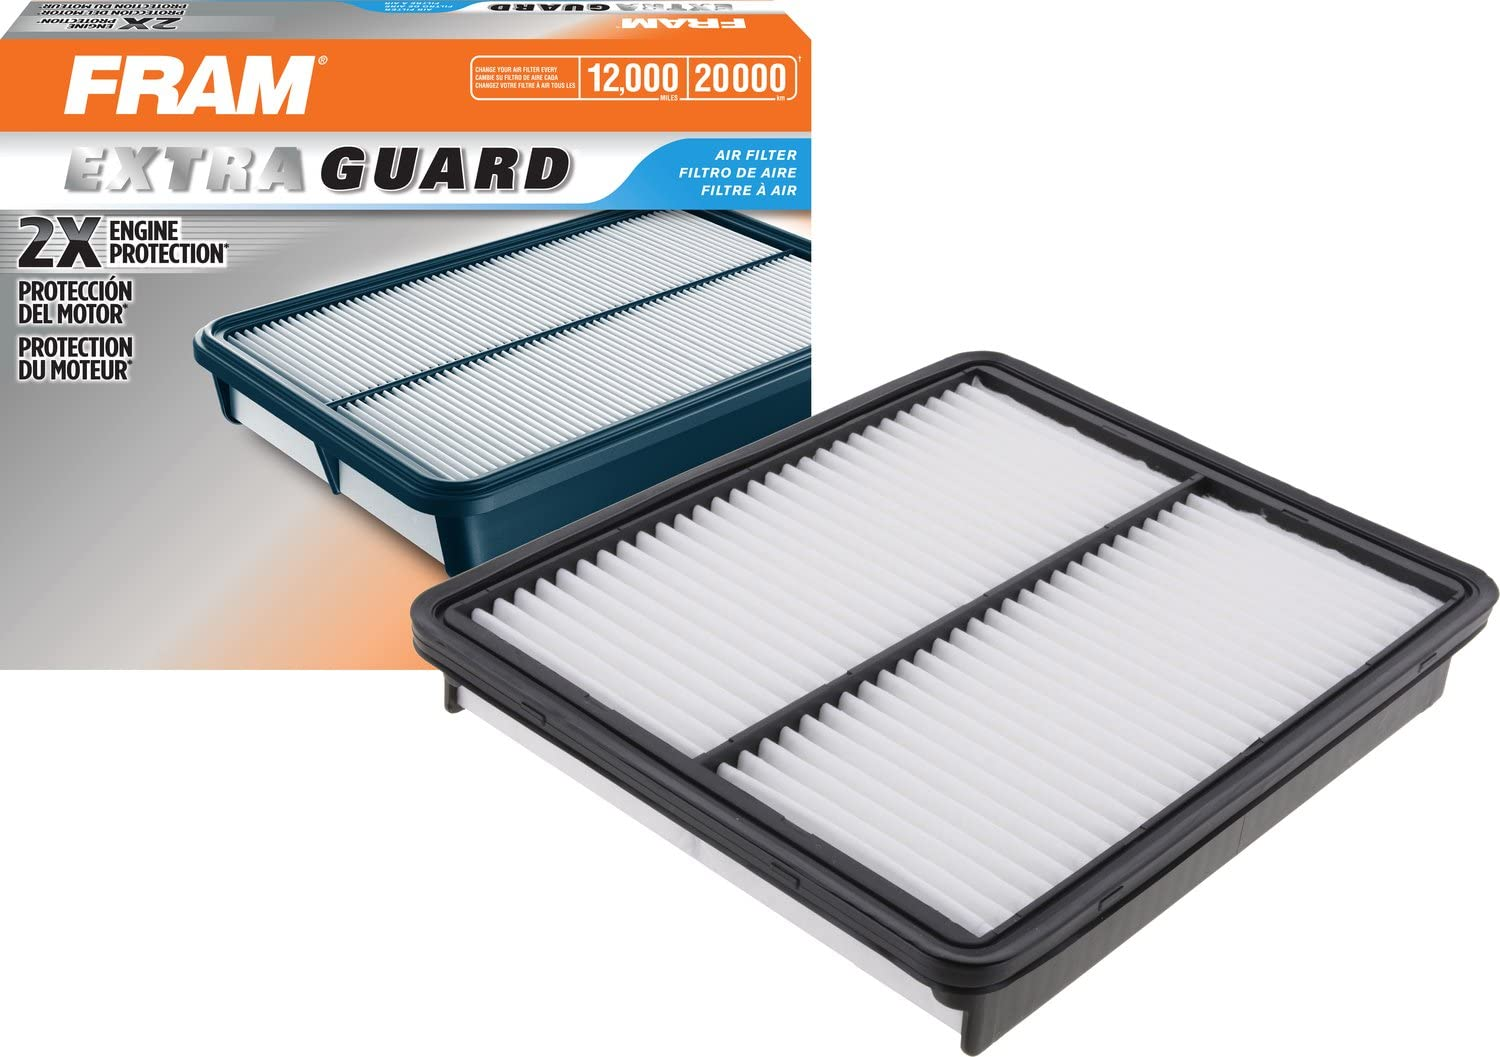 FRAM CA10881 Extra Guard Rigid Rectangular Panel Air Filter